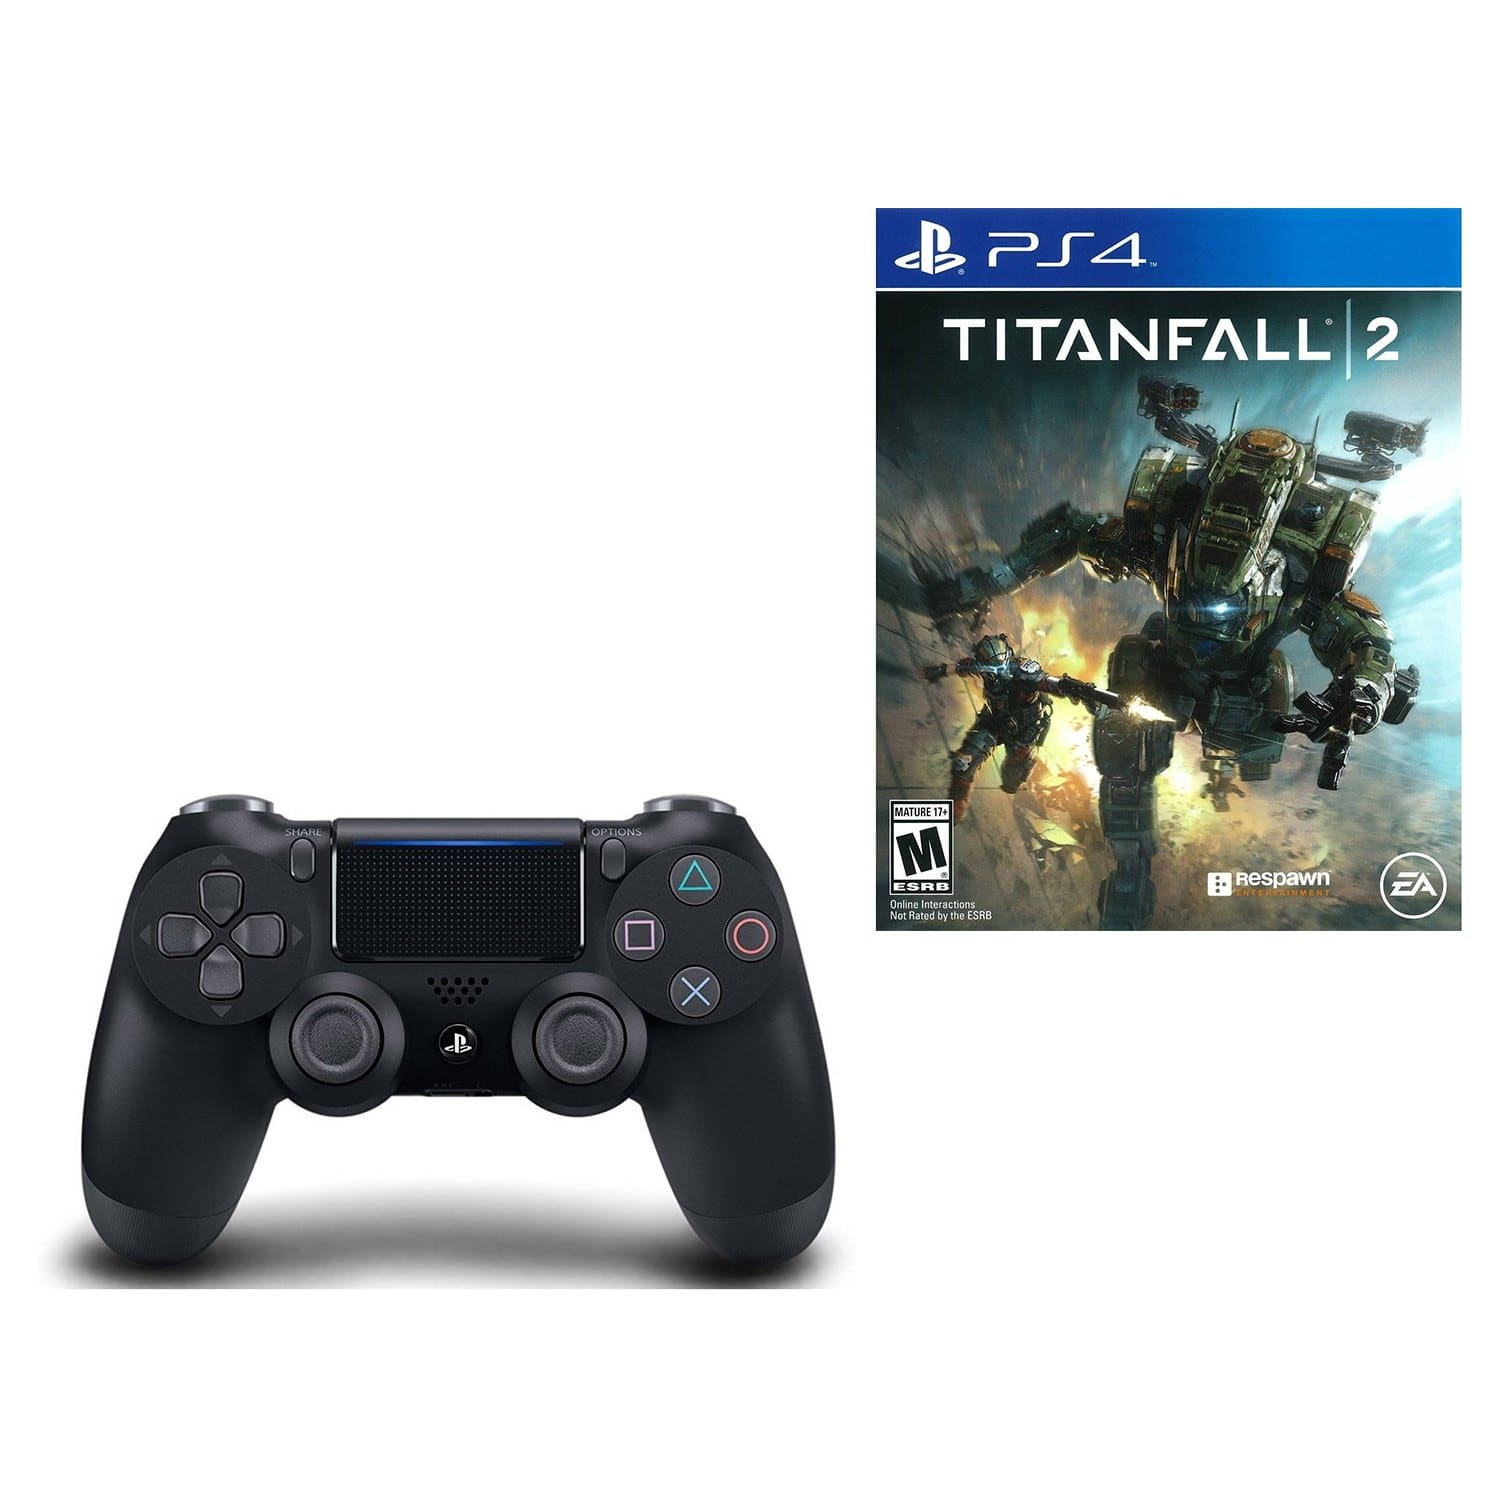 PlayStation 4 DualShock 4 Wireless Controller + Titanfall 2 for $46.71 + Free Shipping